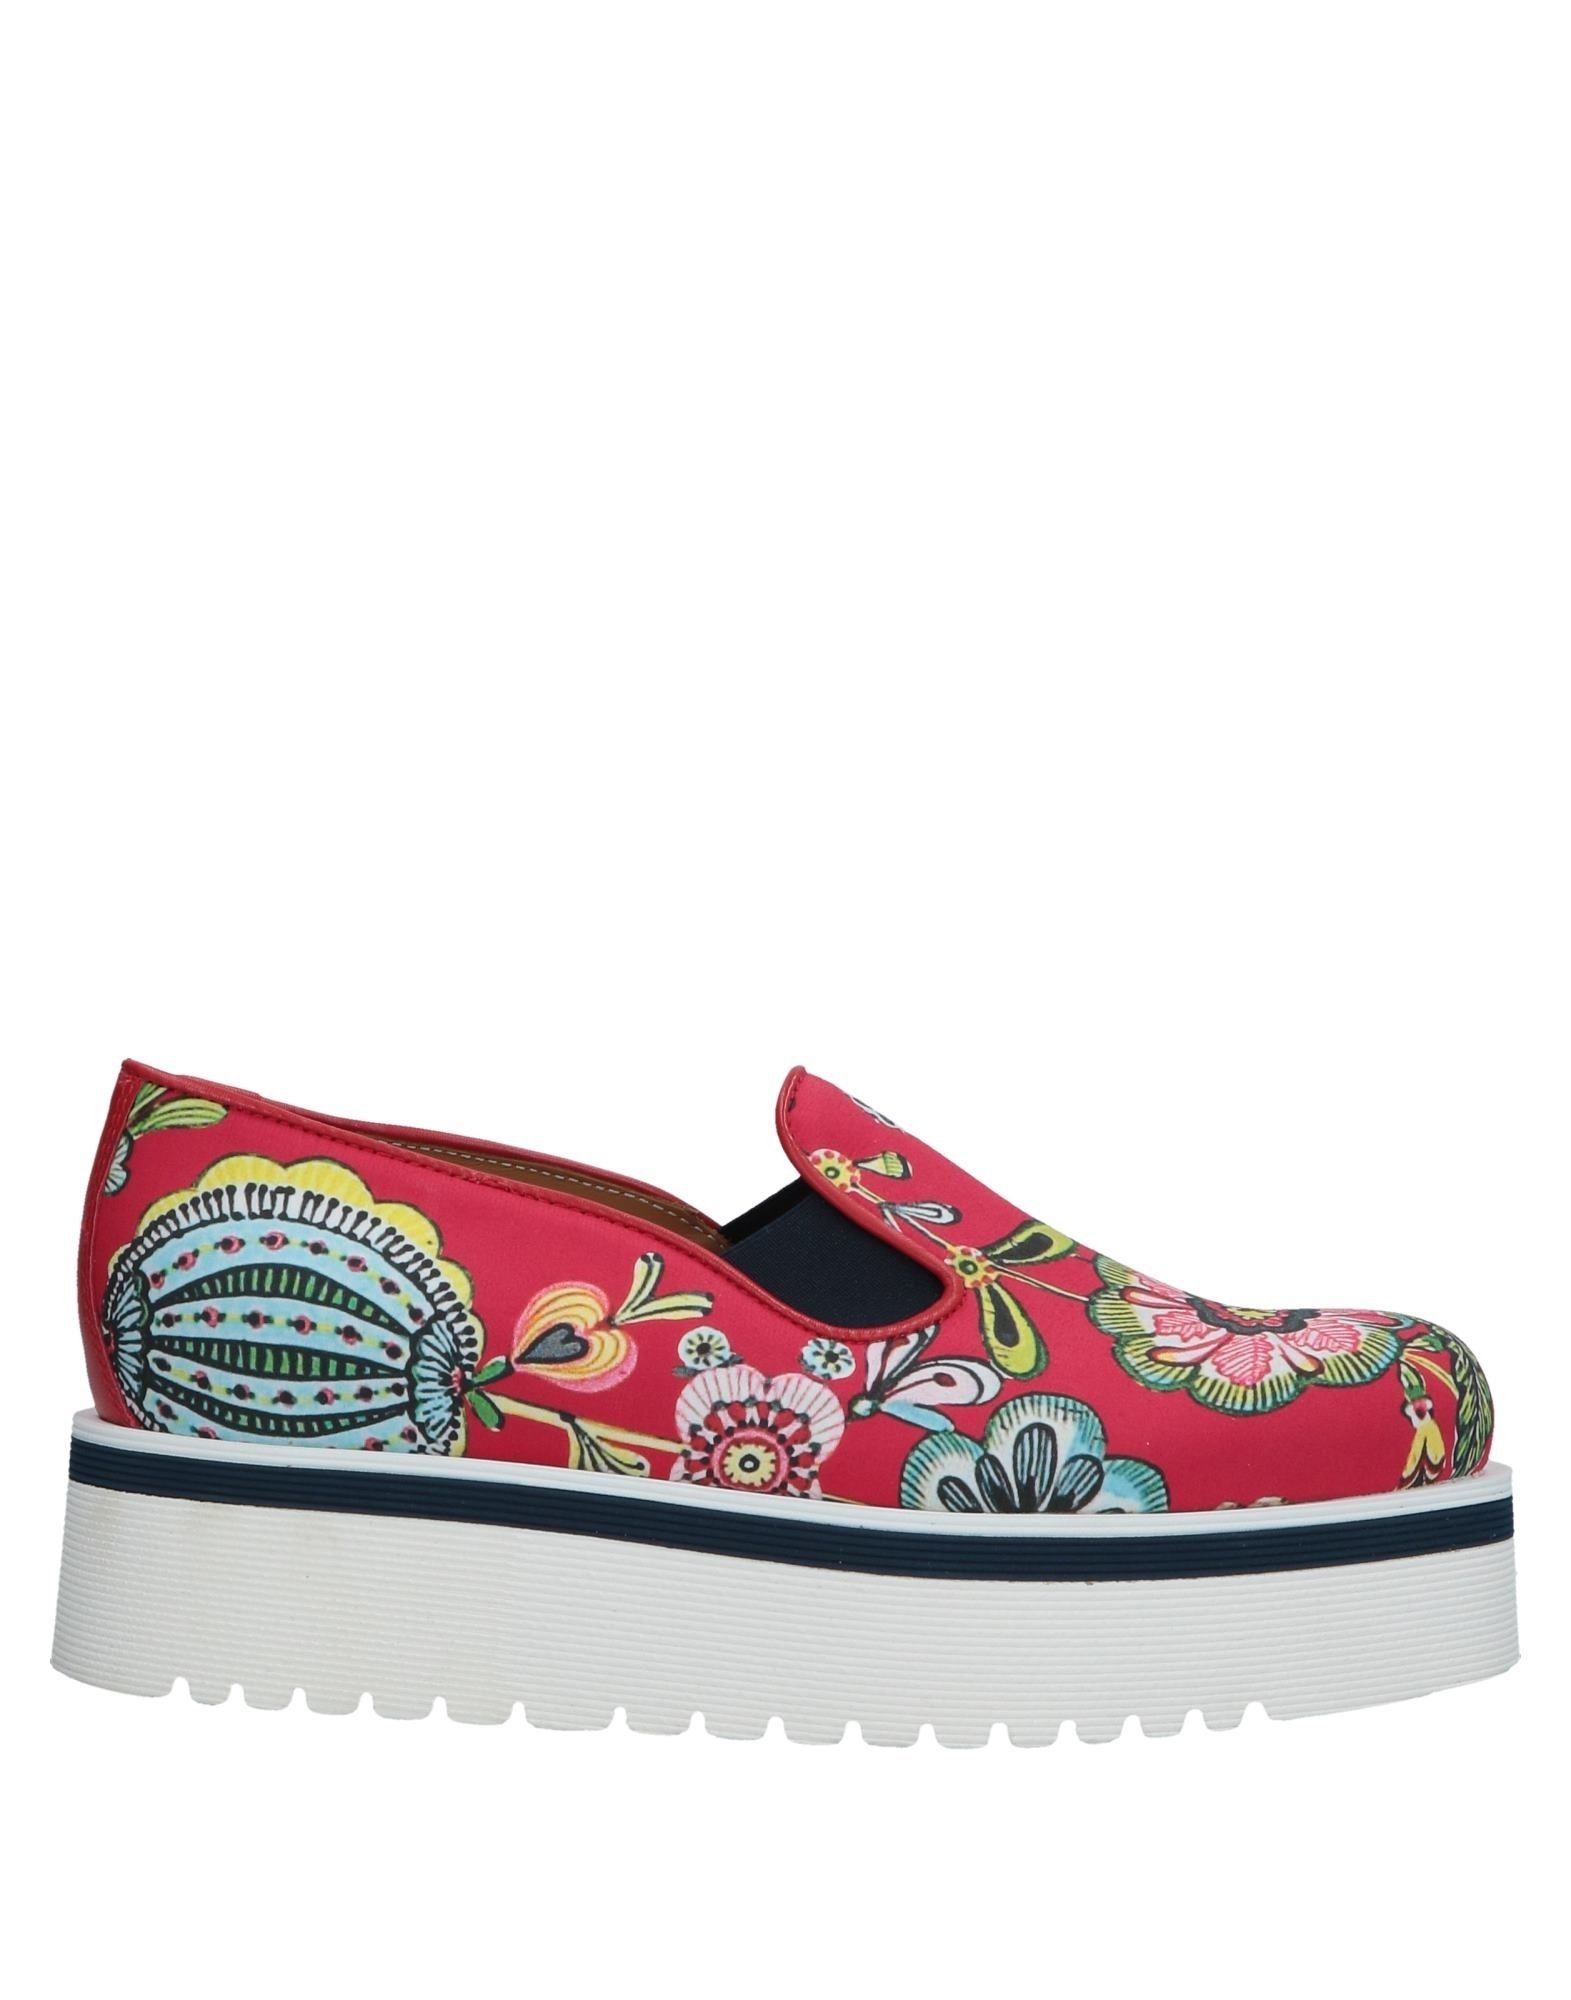 DONDUP Loafers. multicolor pattern, elasticized gores, round toeline, flatform, leather lining, rubber cleated sole, no appliqués, contains non-textile parts of animal origin, large sized. Textile fibers